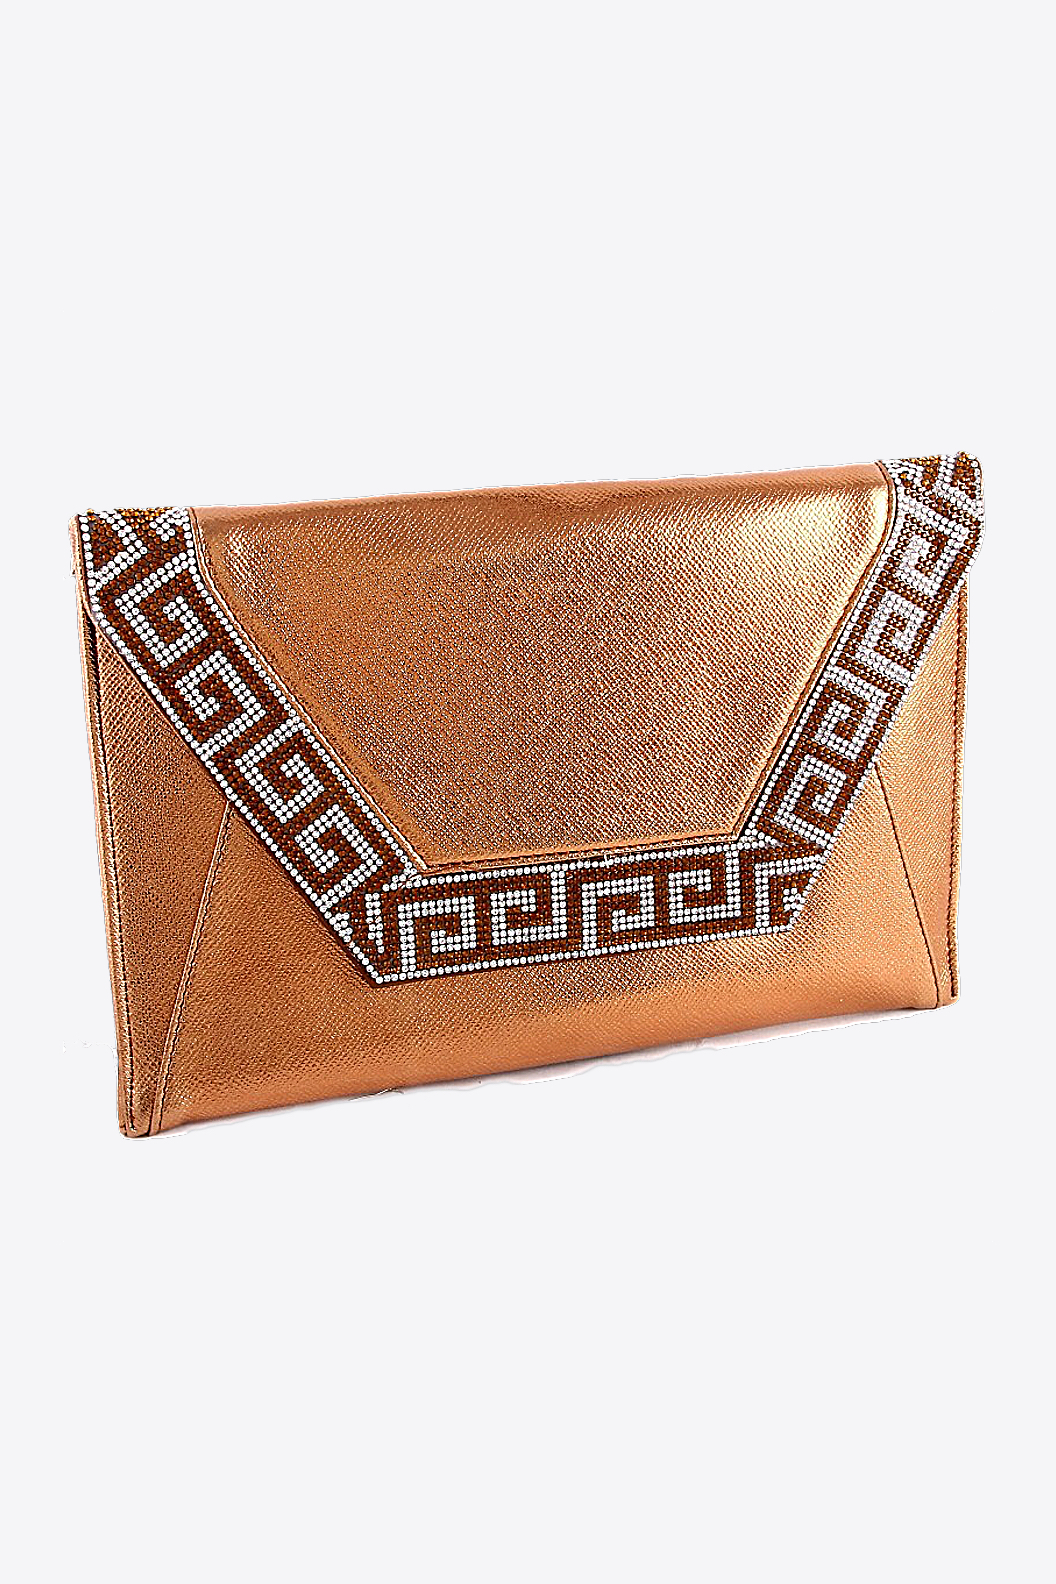 Copper Clutch Purse